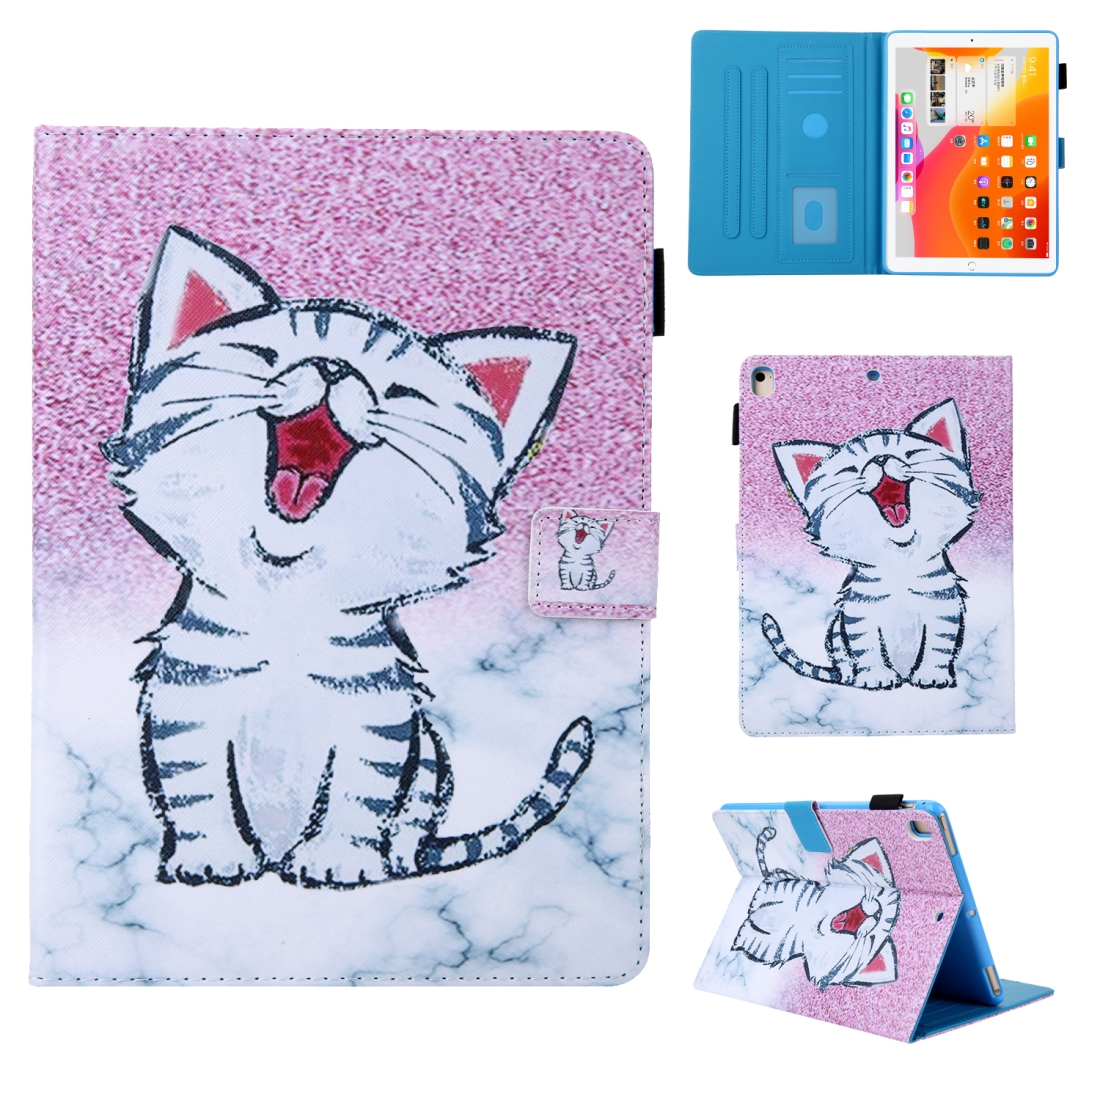 iPad 10.5 Case Colorful Design Leather Case with Sleeve (Red-Billed Cat)